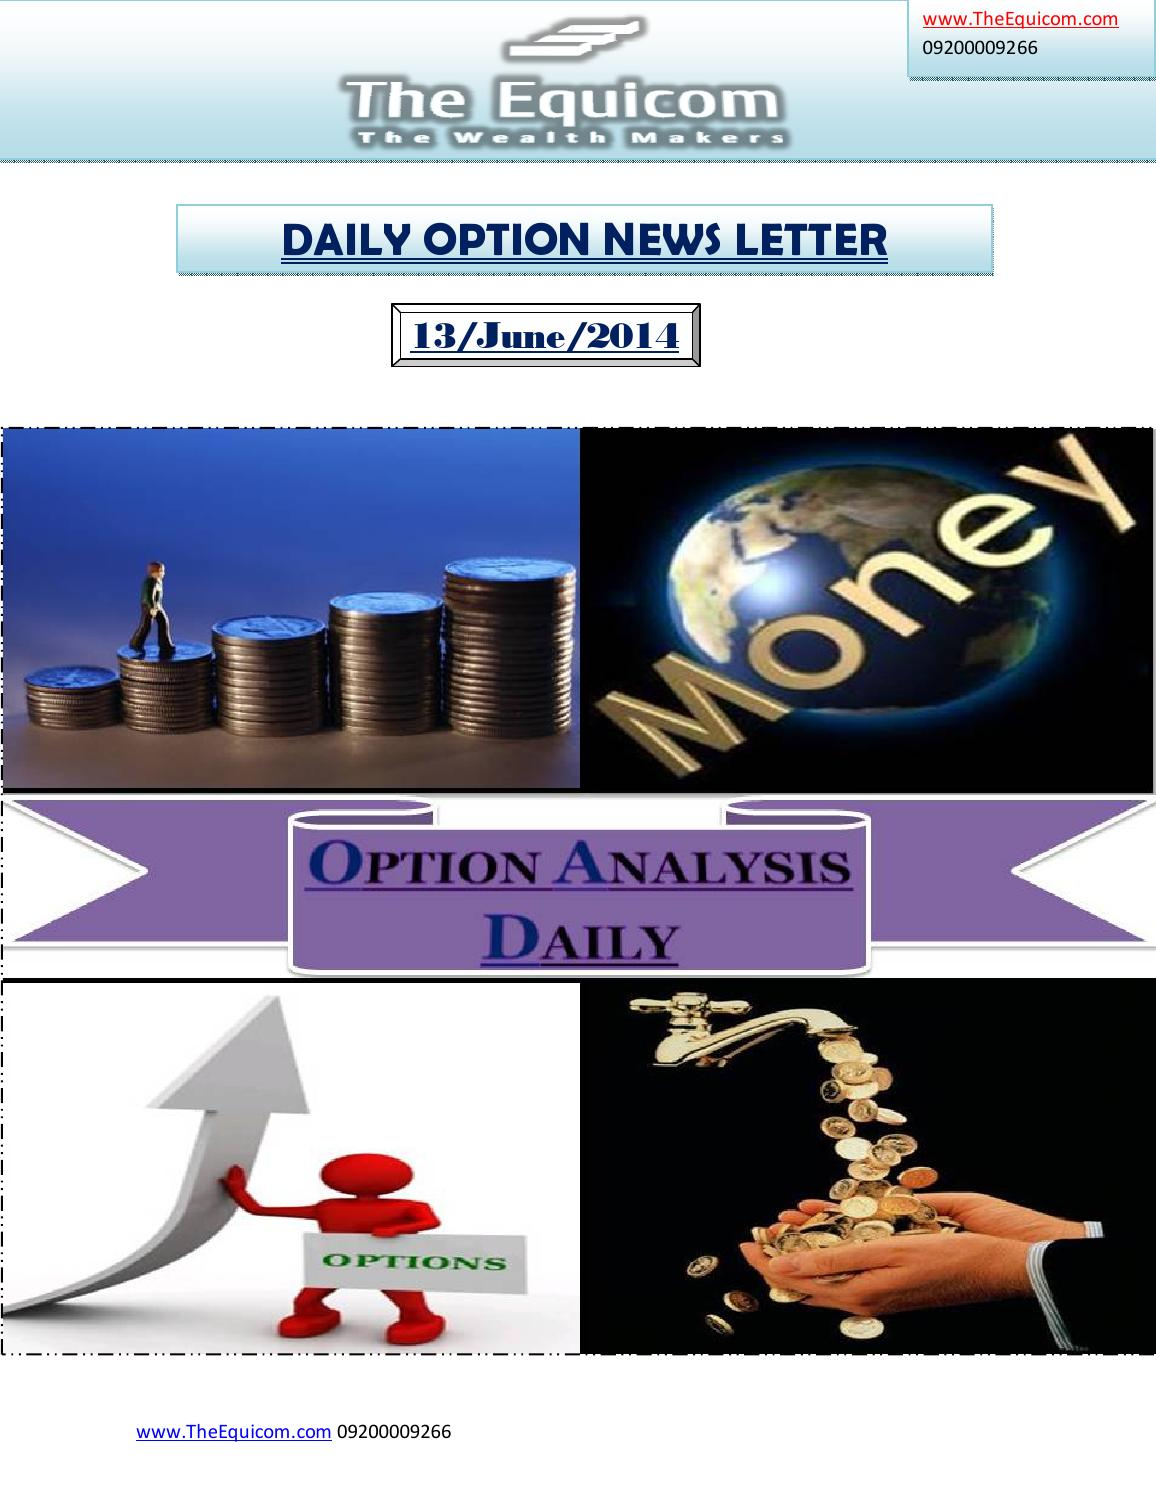 Stock options today